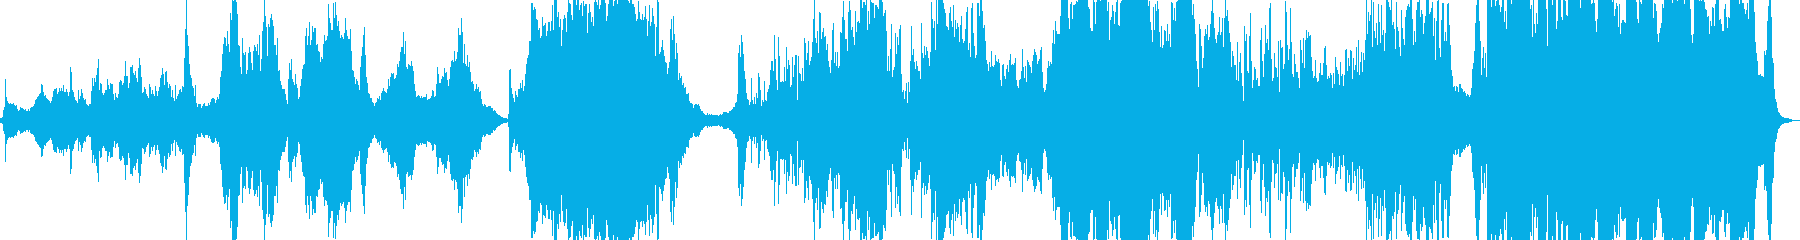 Arabian-style orchestra suite's reproduced waveform